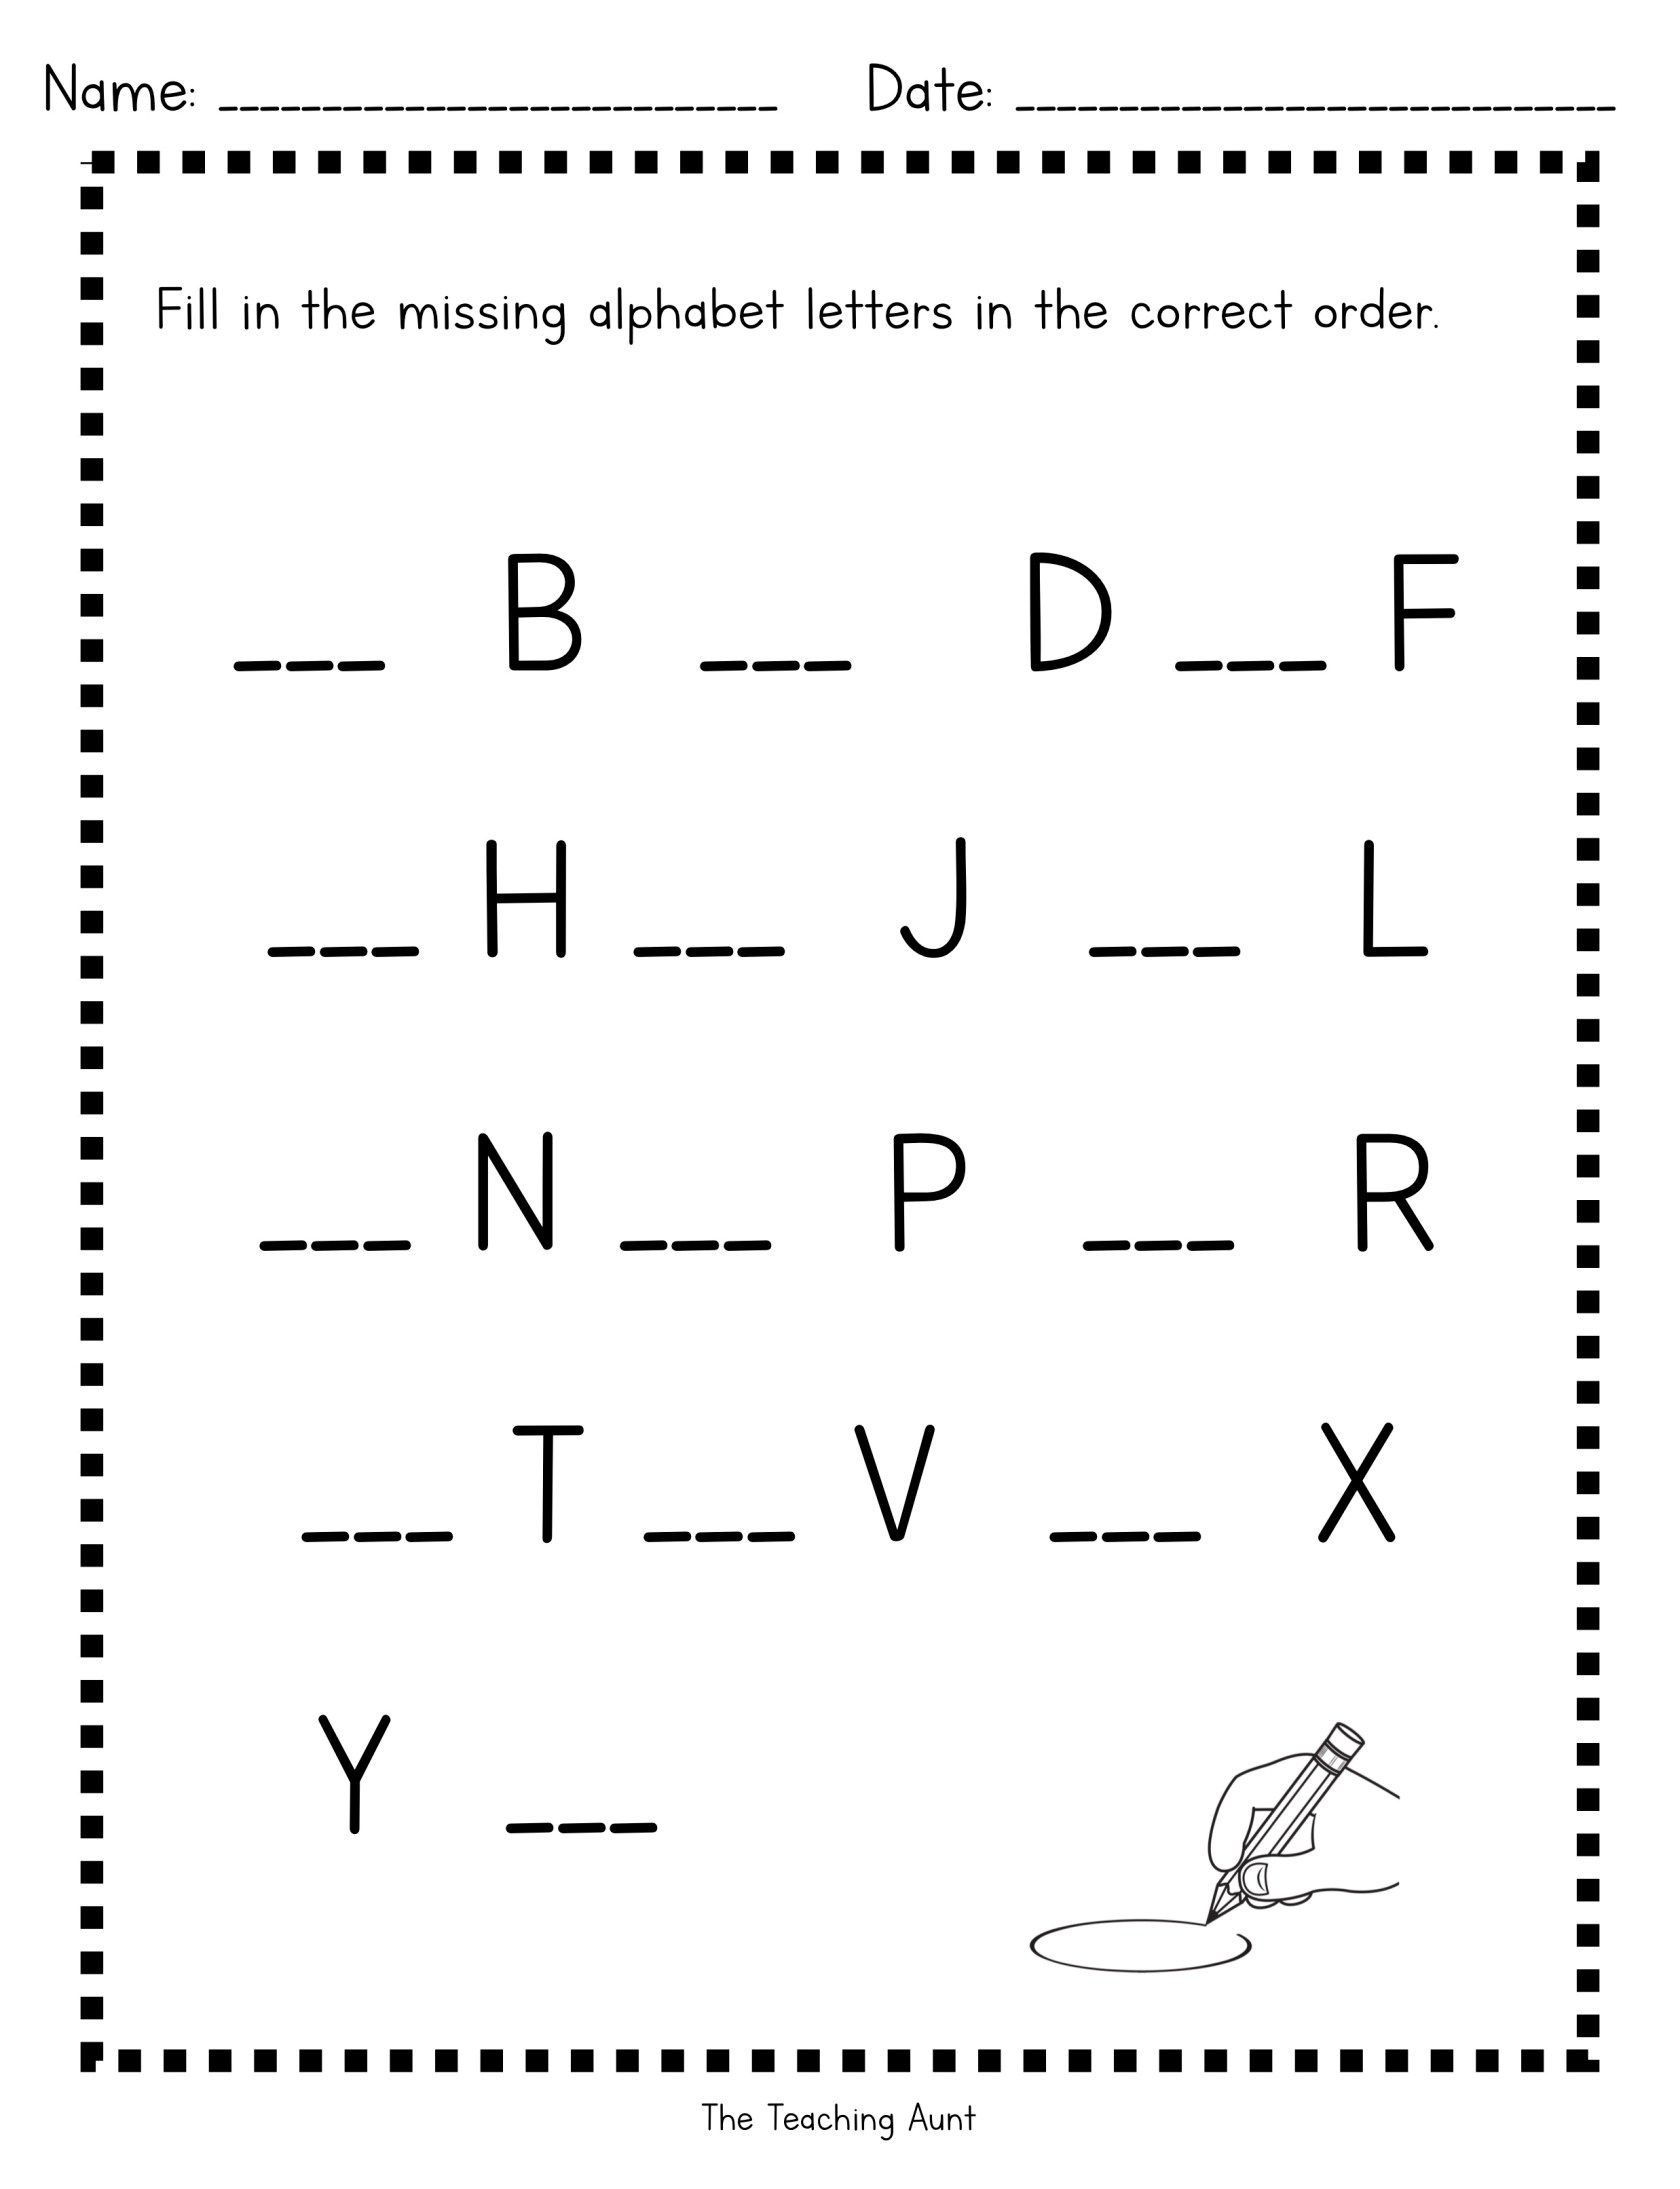 Missing Uppercase Letters Worksheets Free Printable Uppercase Letters Worksheets Alphabet Letter Worksheets Alphabet Worksheets [ 2189 x 1680 Pixel ]